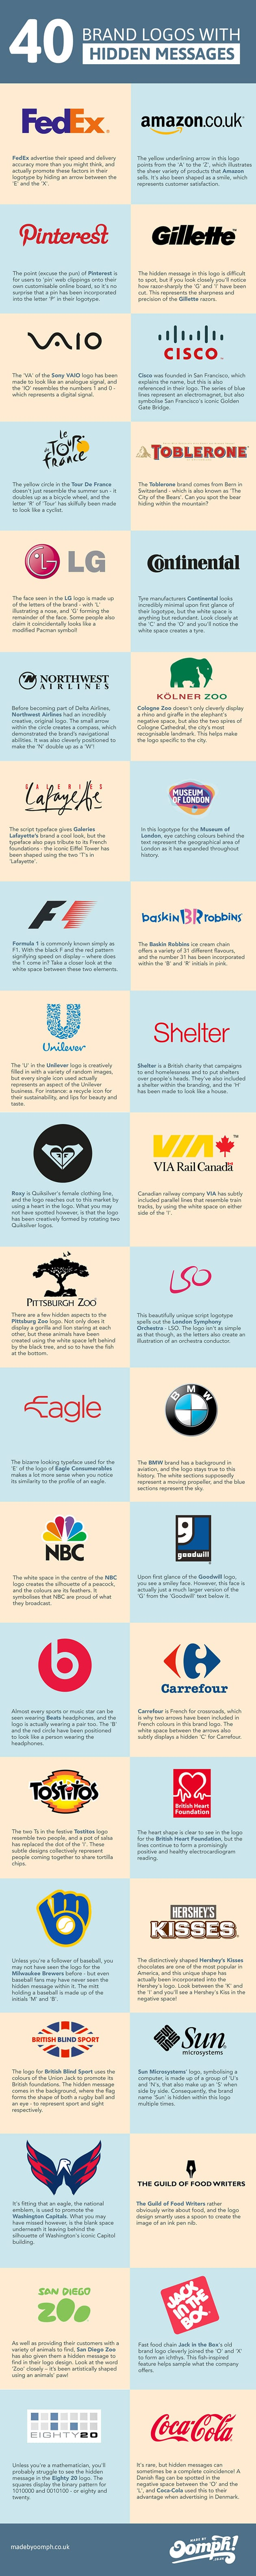 oomph-infographic-brand-logos